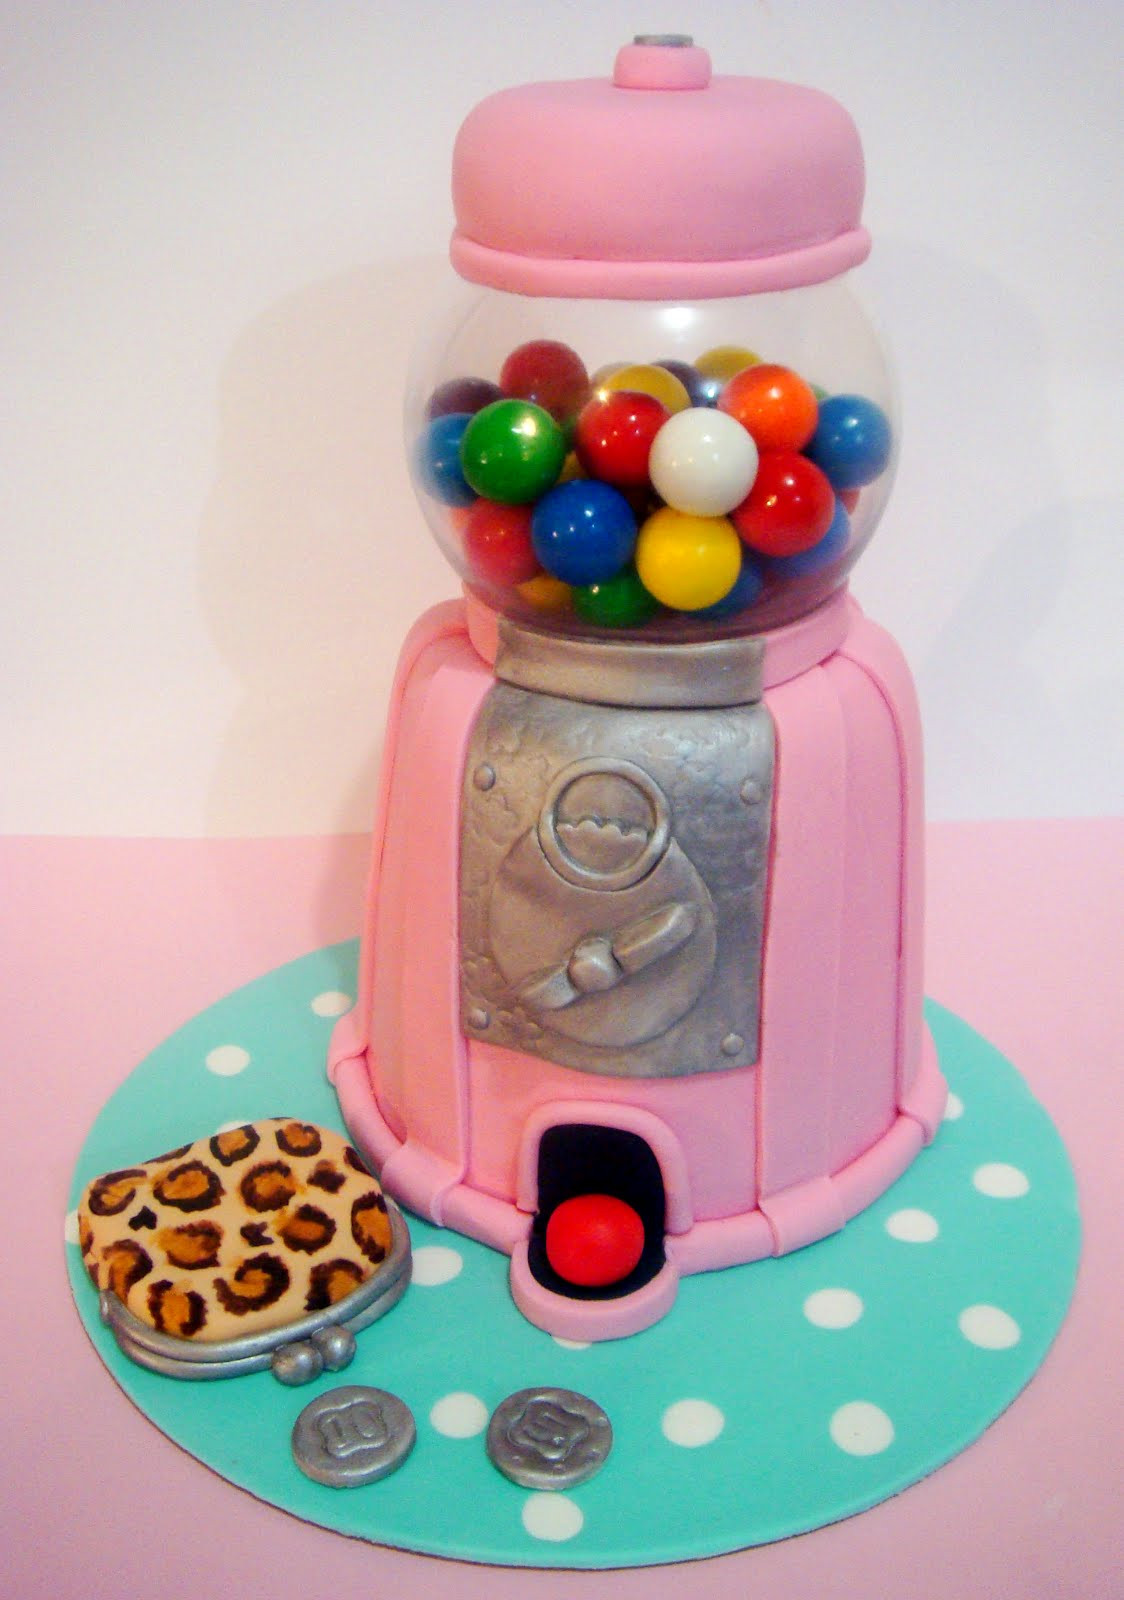 Best ideas about Birthday Cake Gum . Save or Pin butter hearts sugar Gumball Machine Cake Now.